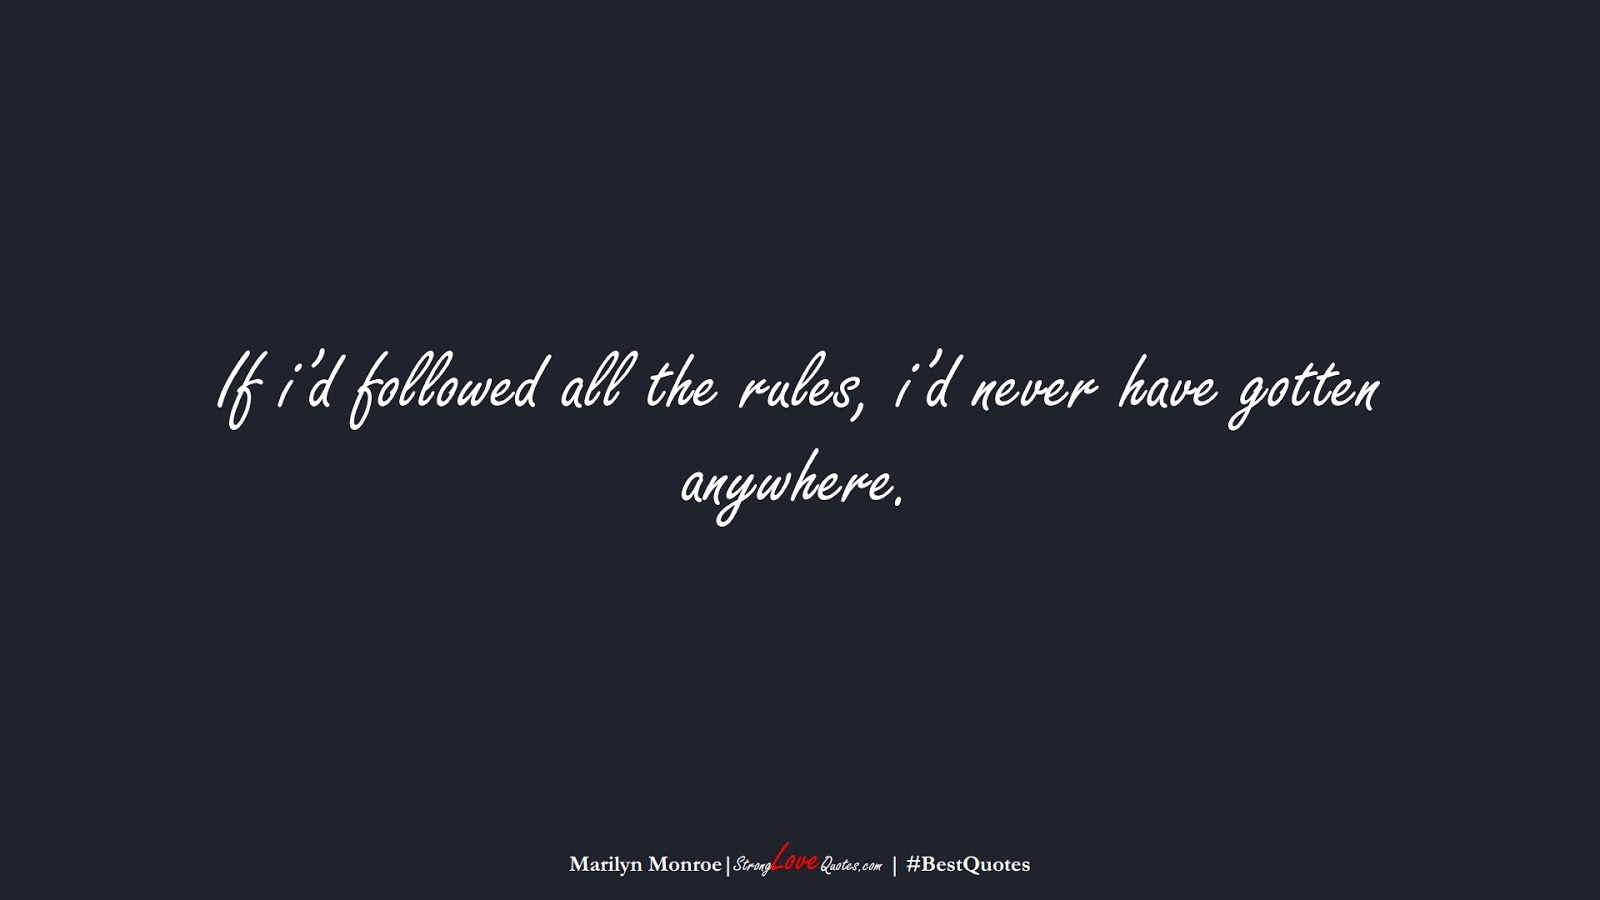 If i'd followed all the rules, i'd never have gotten anywhere. (Marilyn Monroe);  #BestQuotes